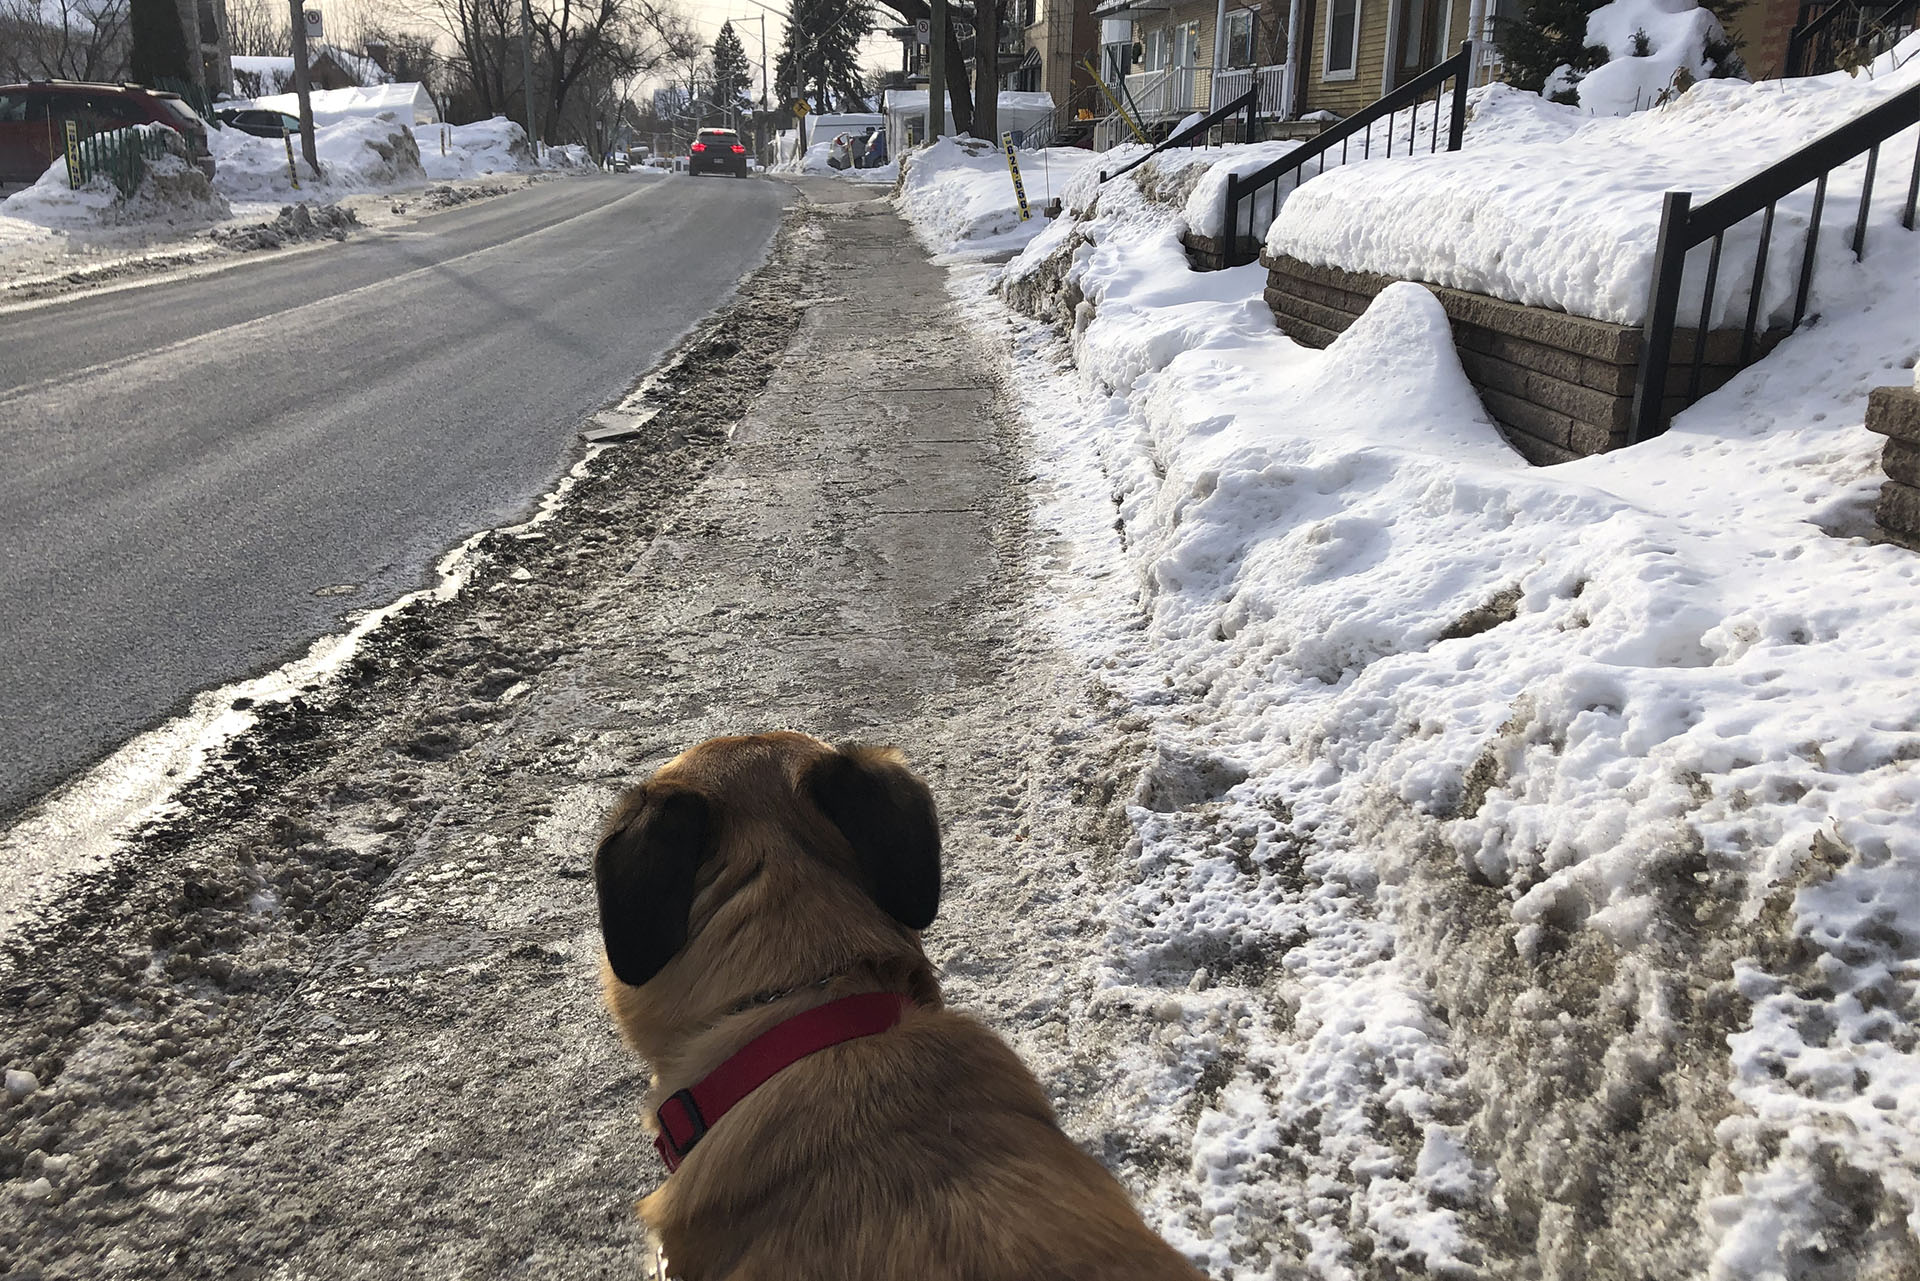 A dog out for a walk.